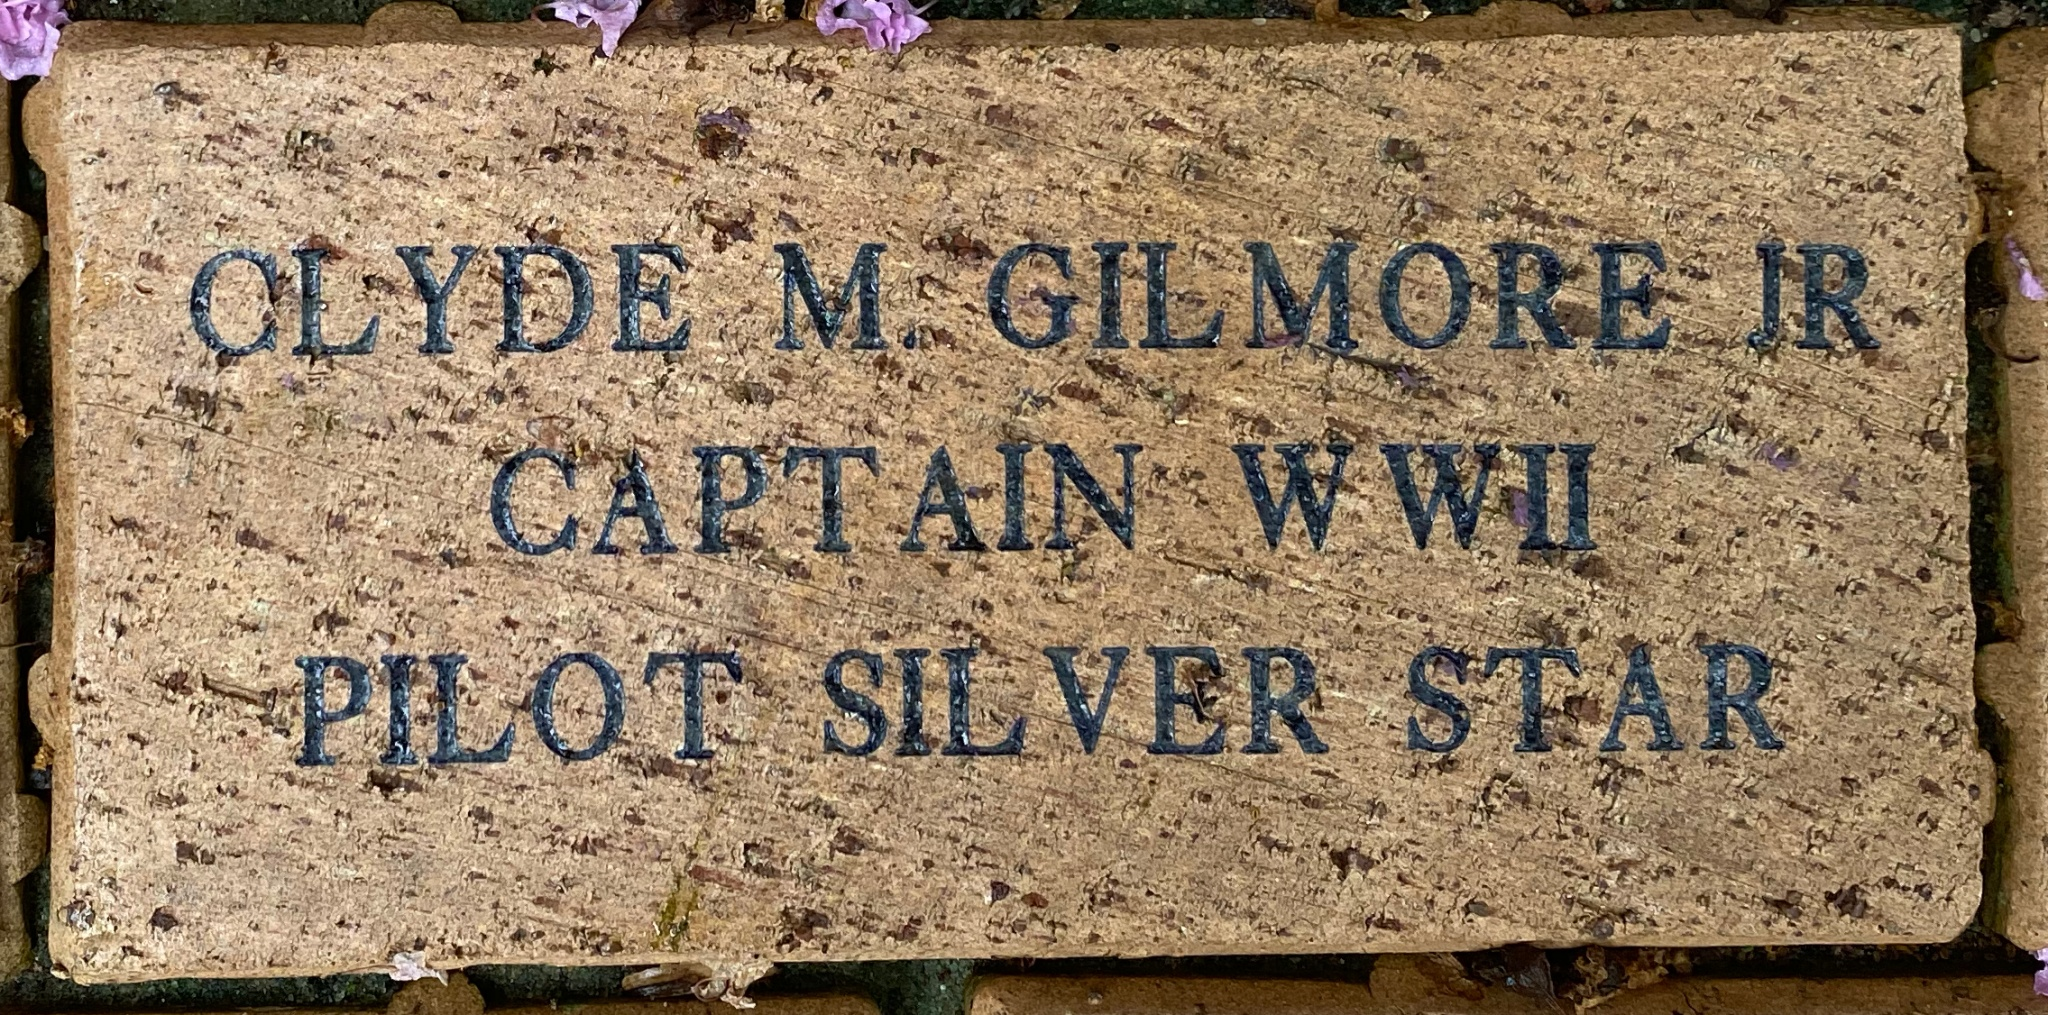 CLYDE M. GILMORE JR. CAPTAIN WWII PILOT SILVER STAR